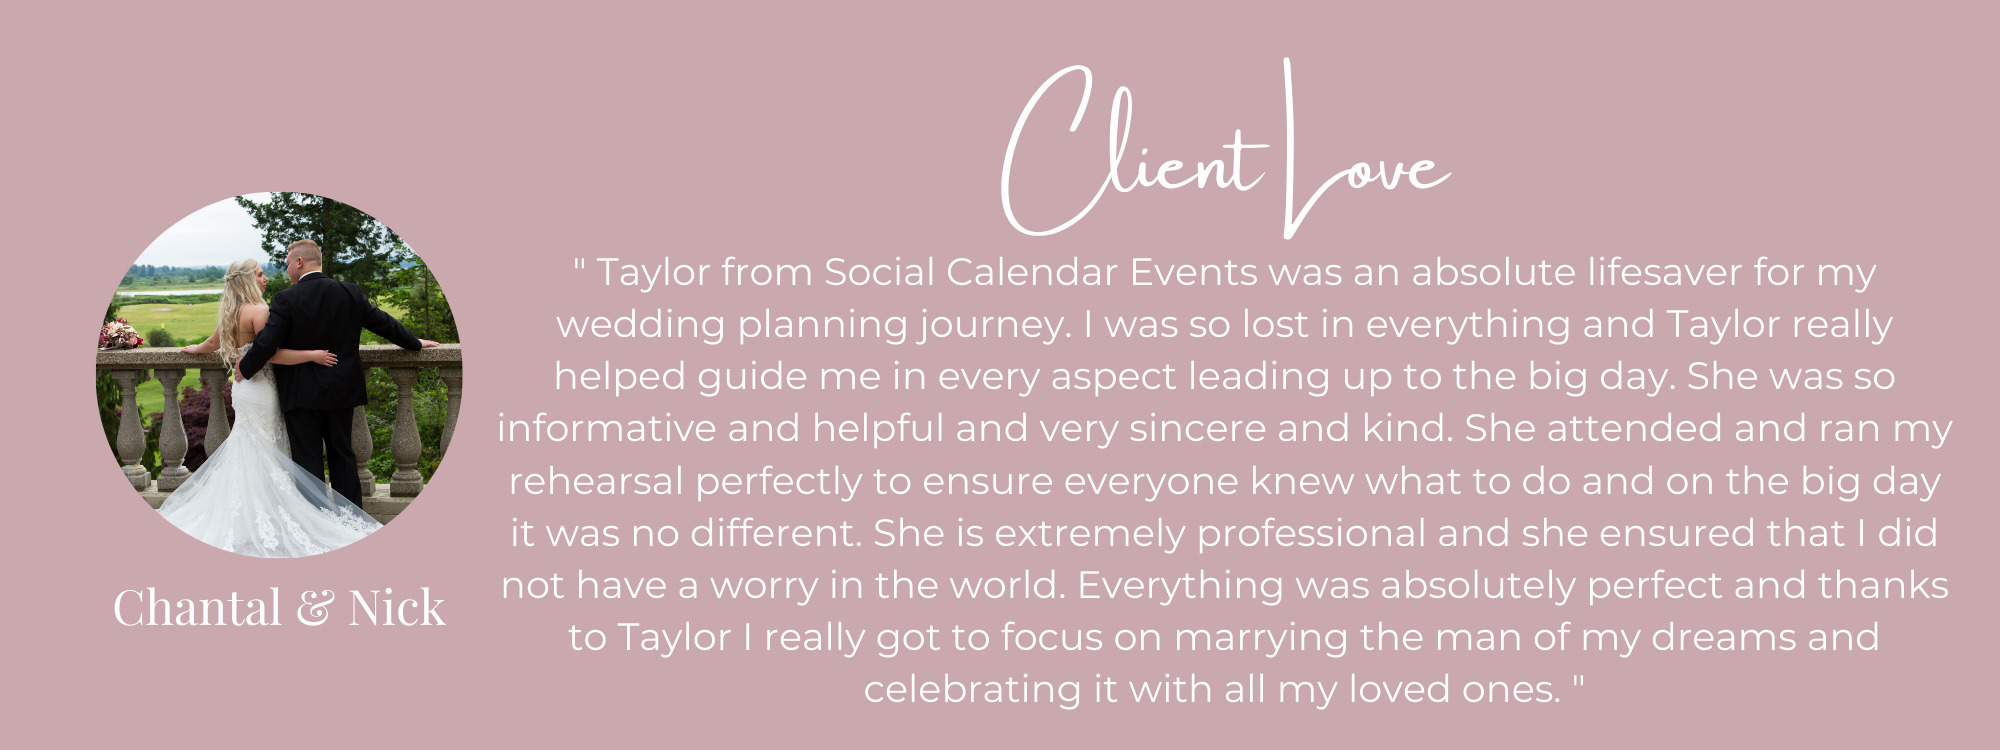 wedding client review for wedding planner